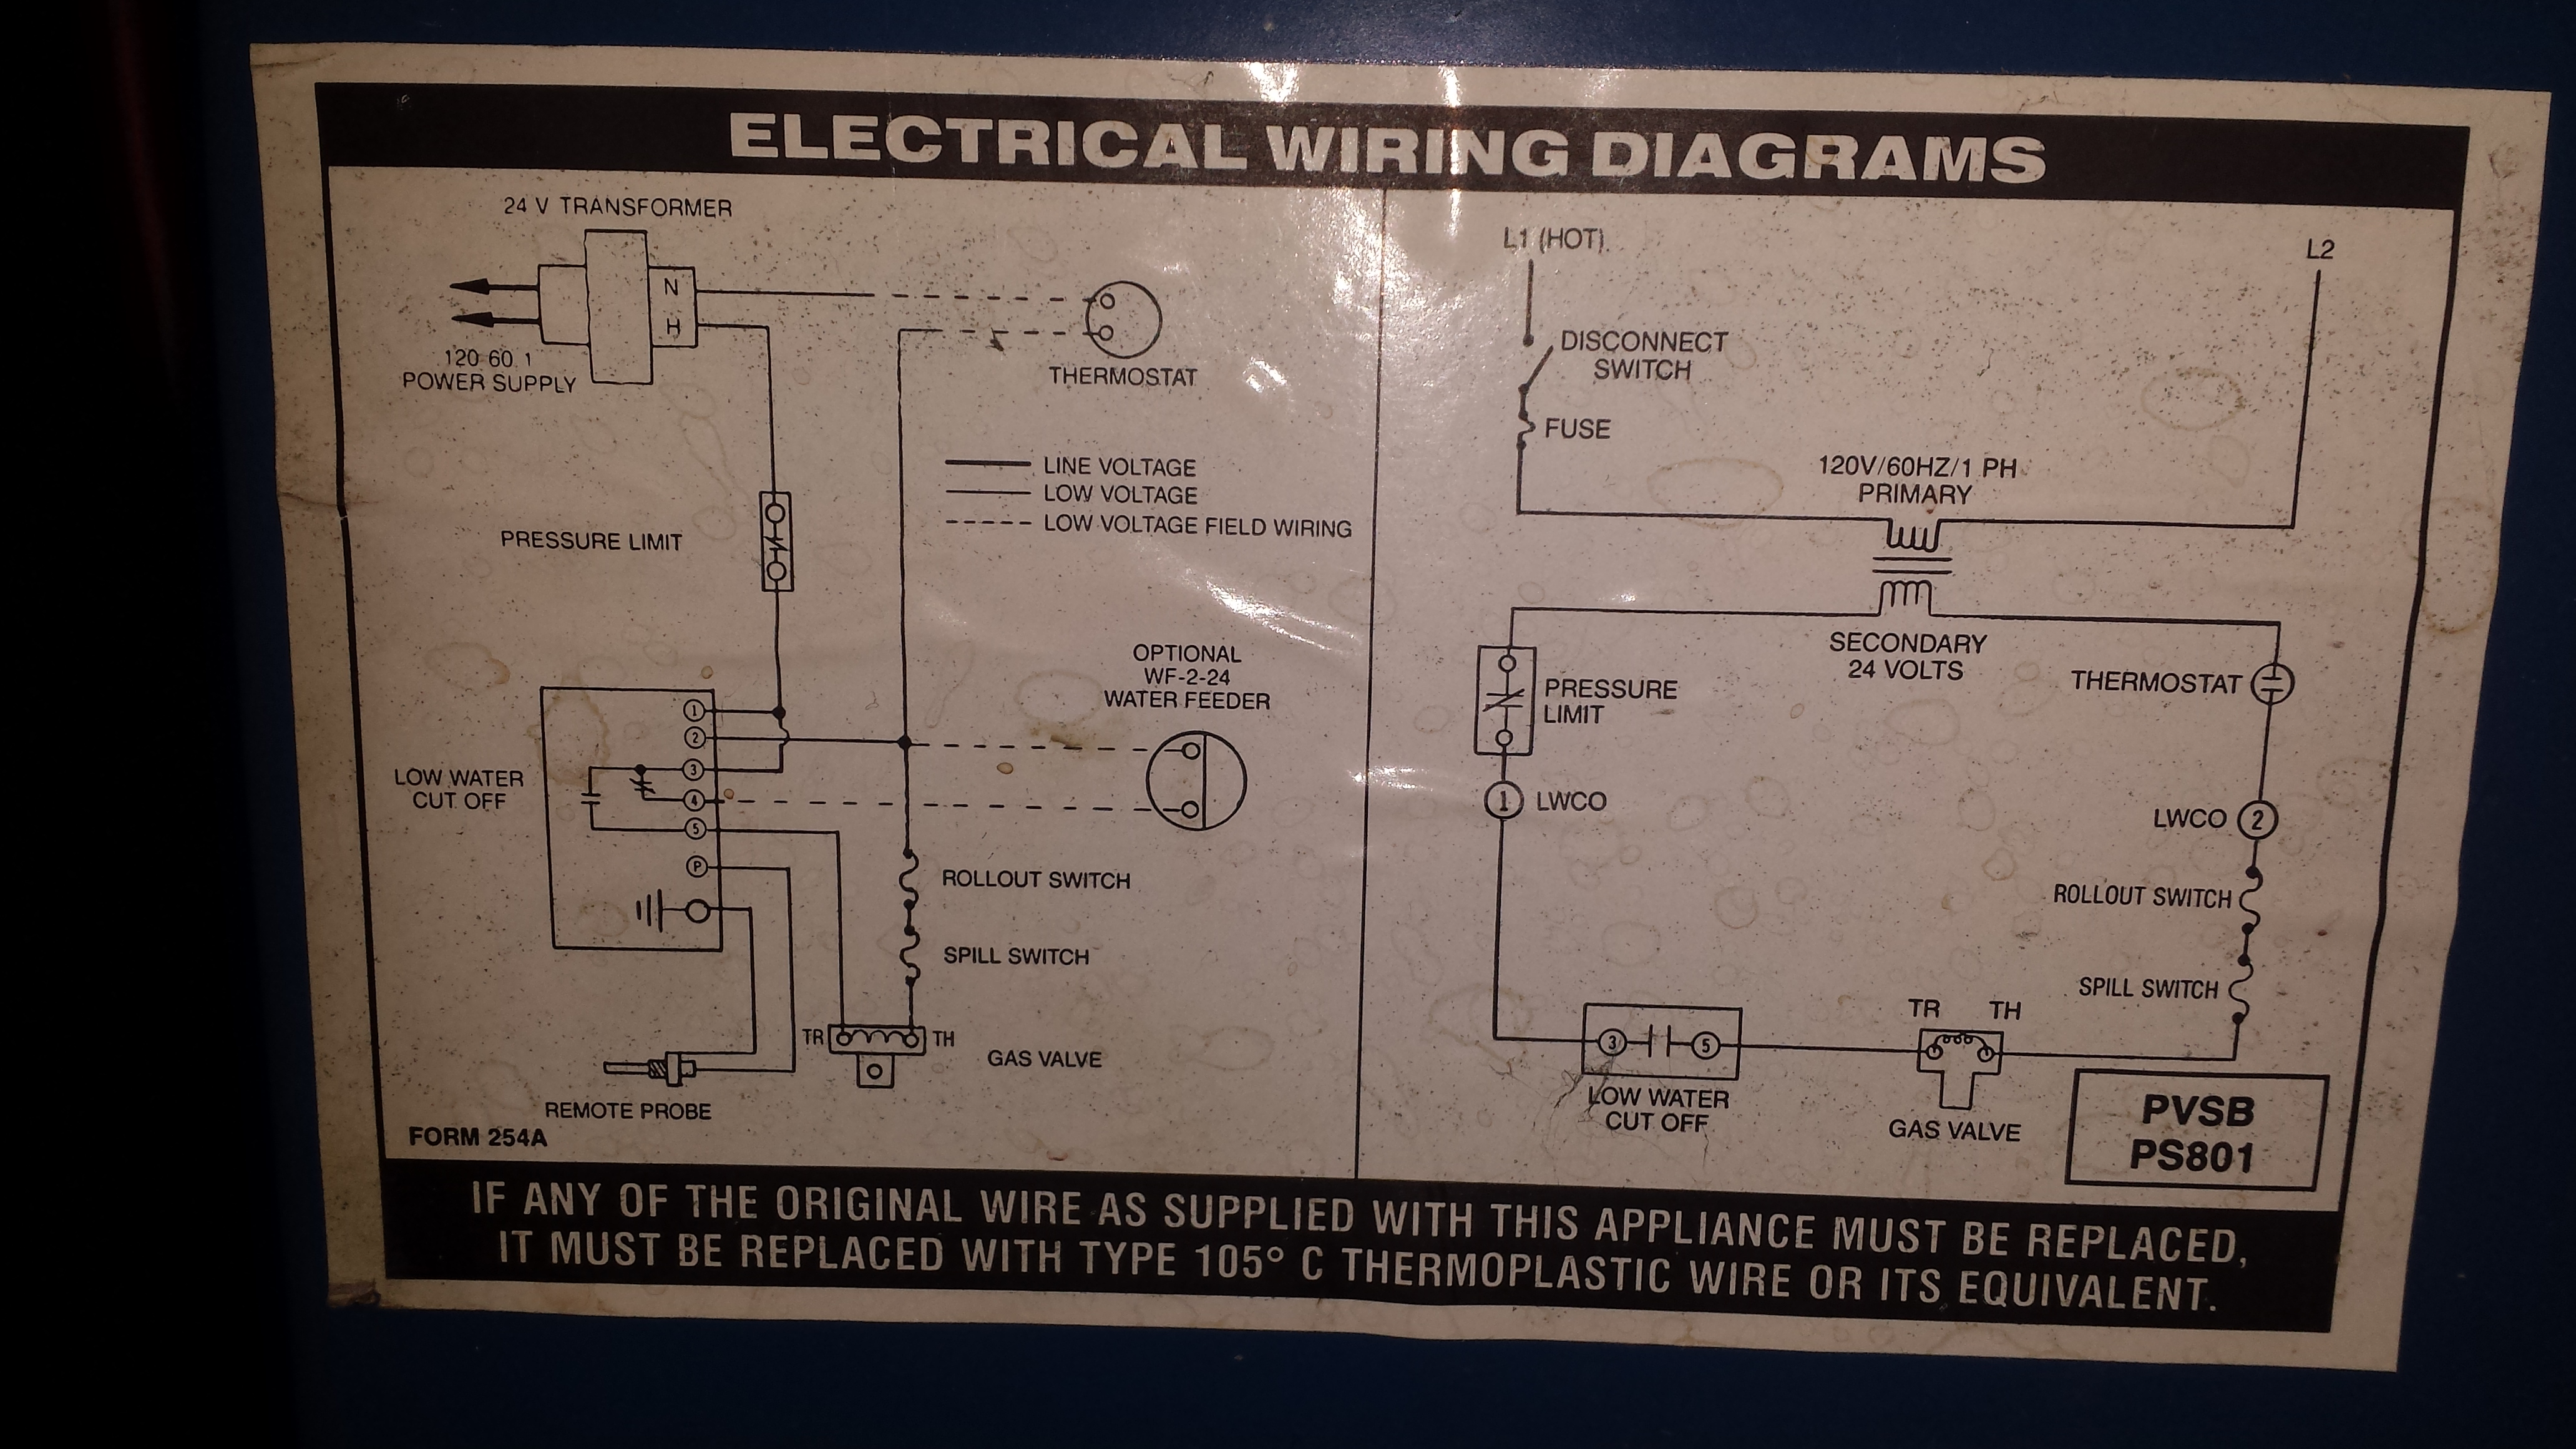 I Have A Boiler That Has Standing Pilot Light But The Burners Will Furnace Spill Switch With Wiring Diagrams 2014 11 18 164428 1416329031834 1646985873